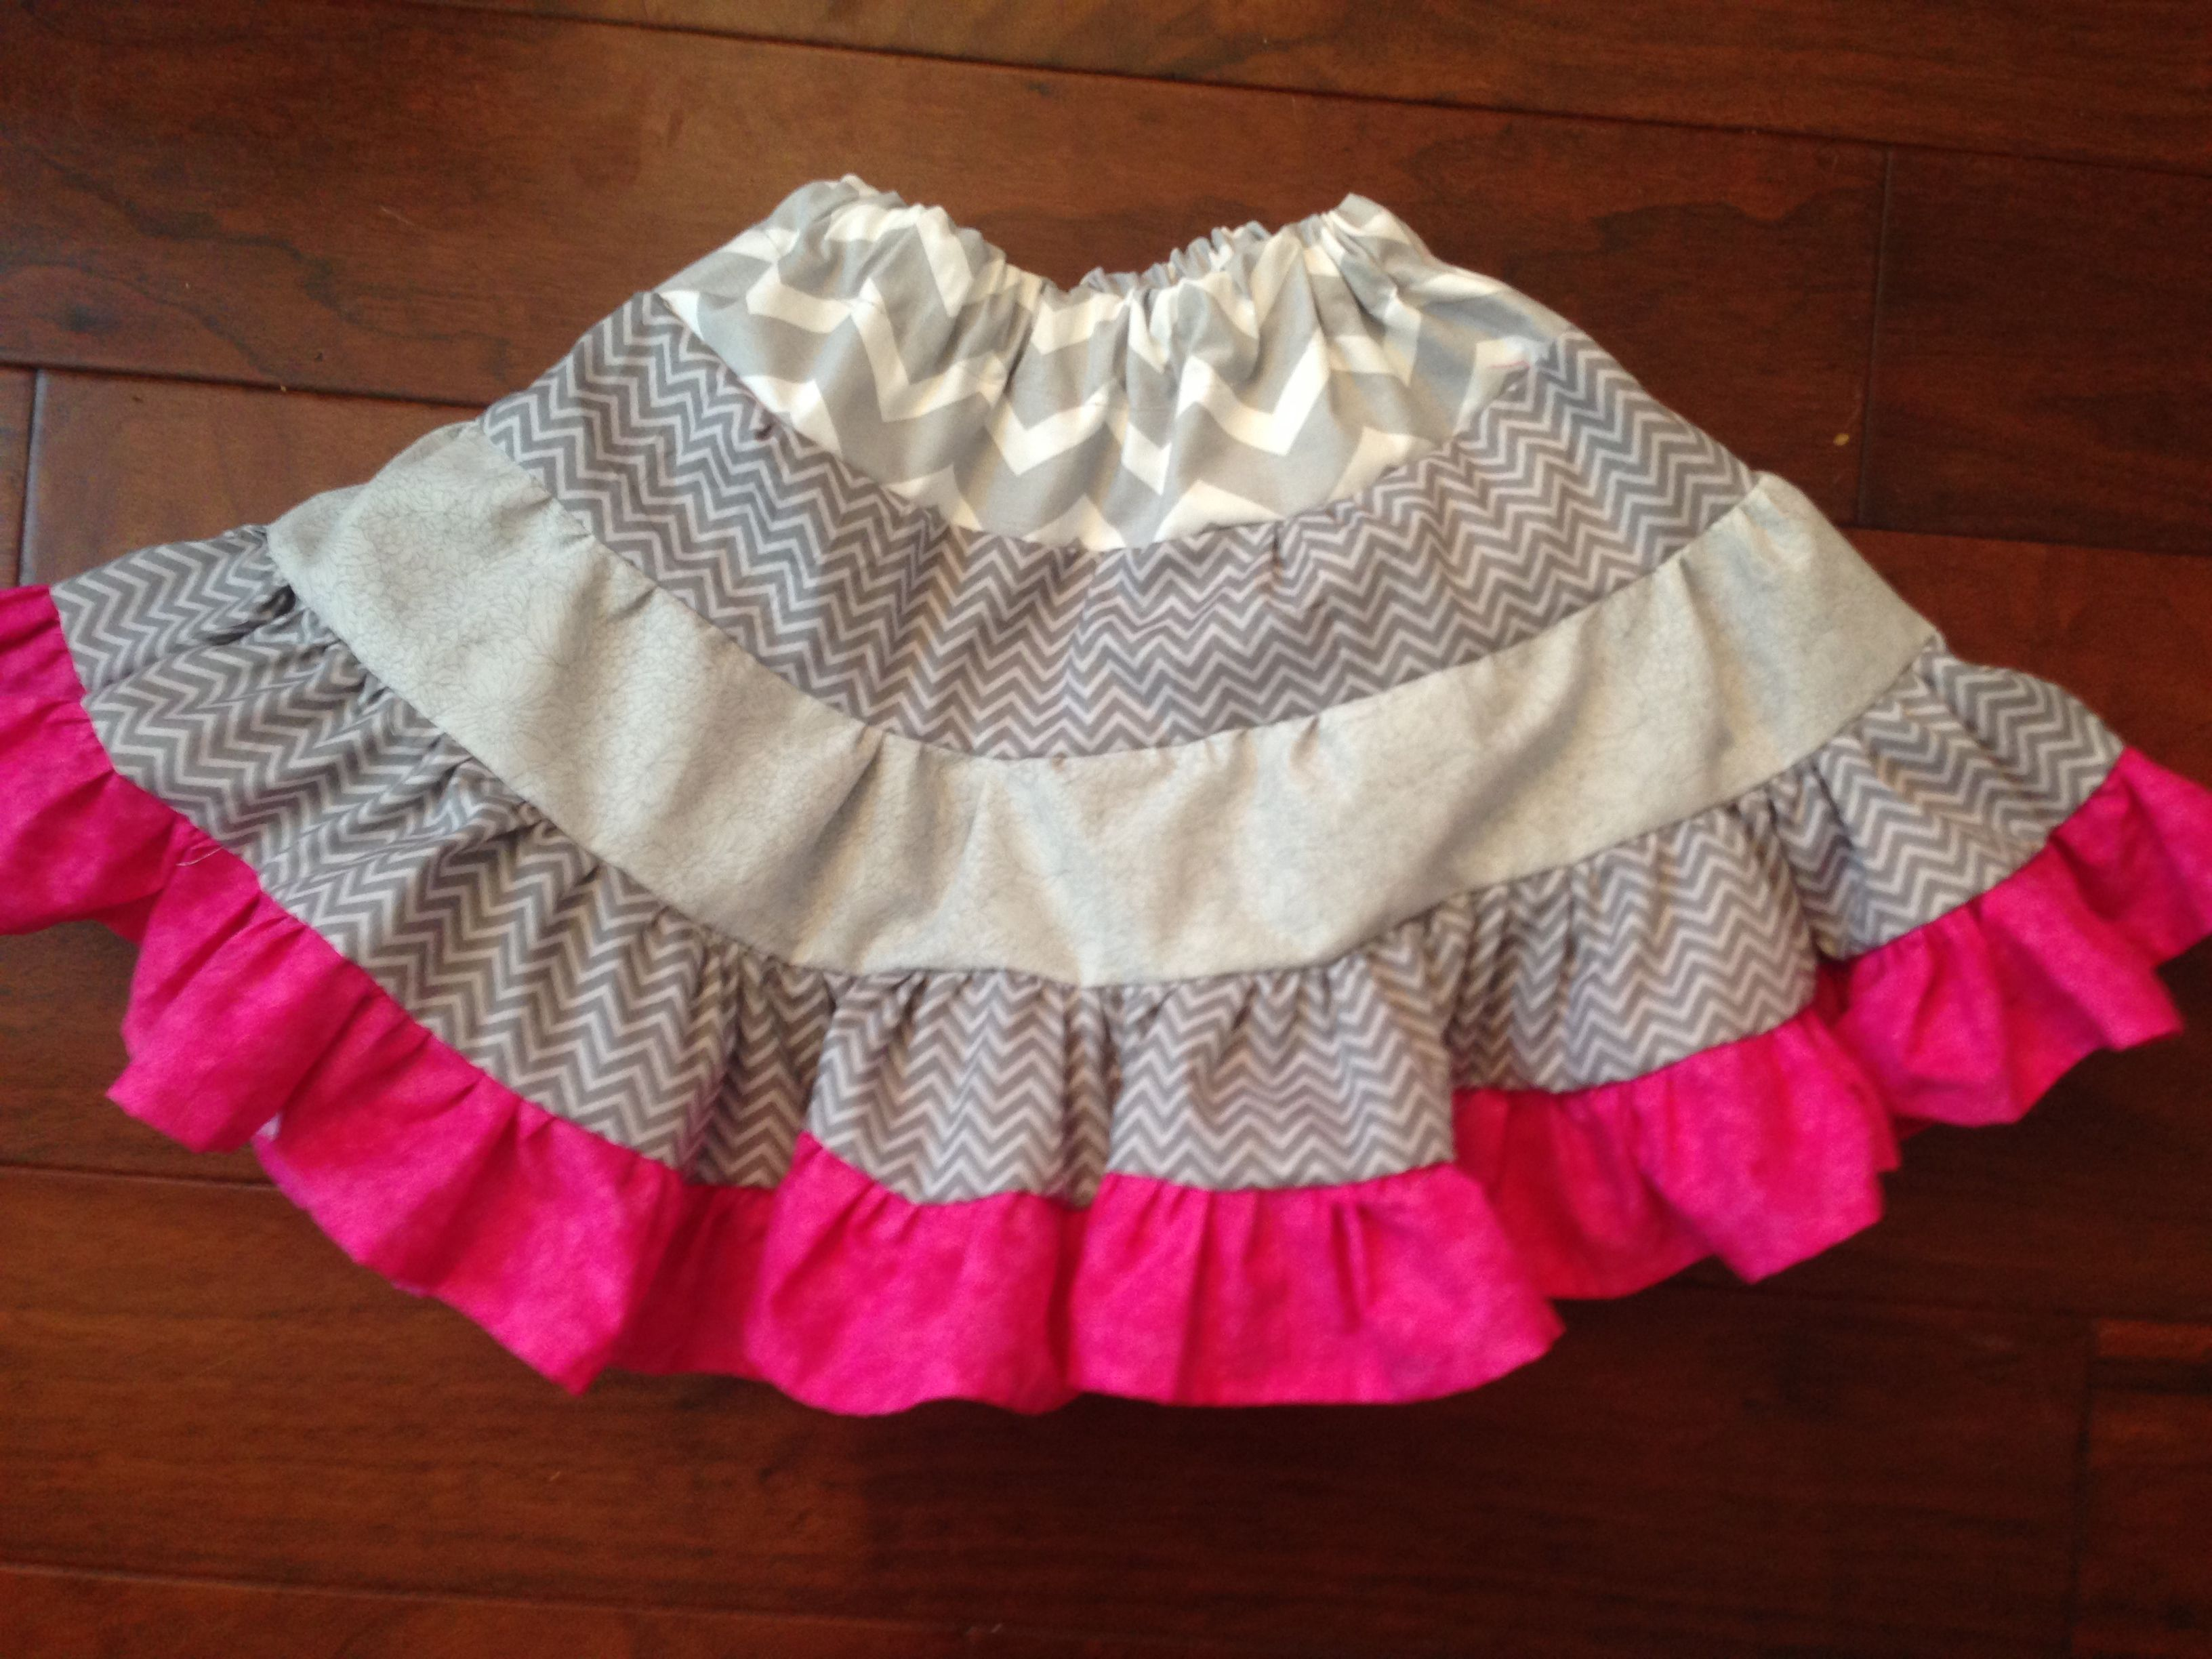 Twirl Skirt - Linking to the tutorial I used to make this